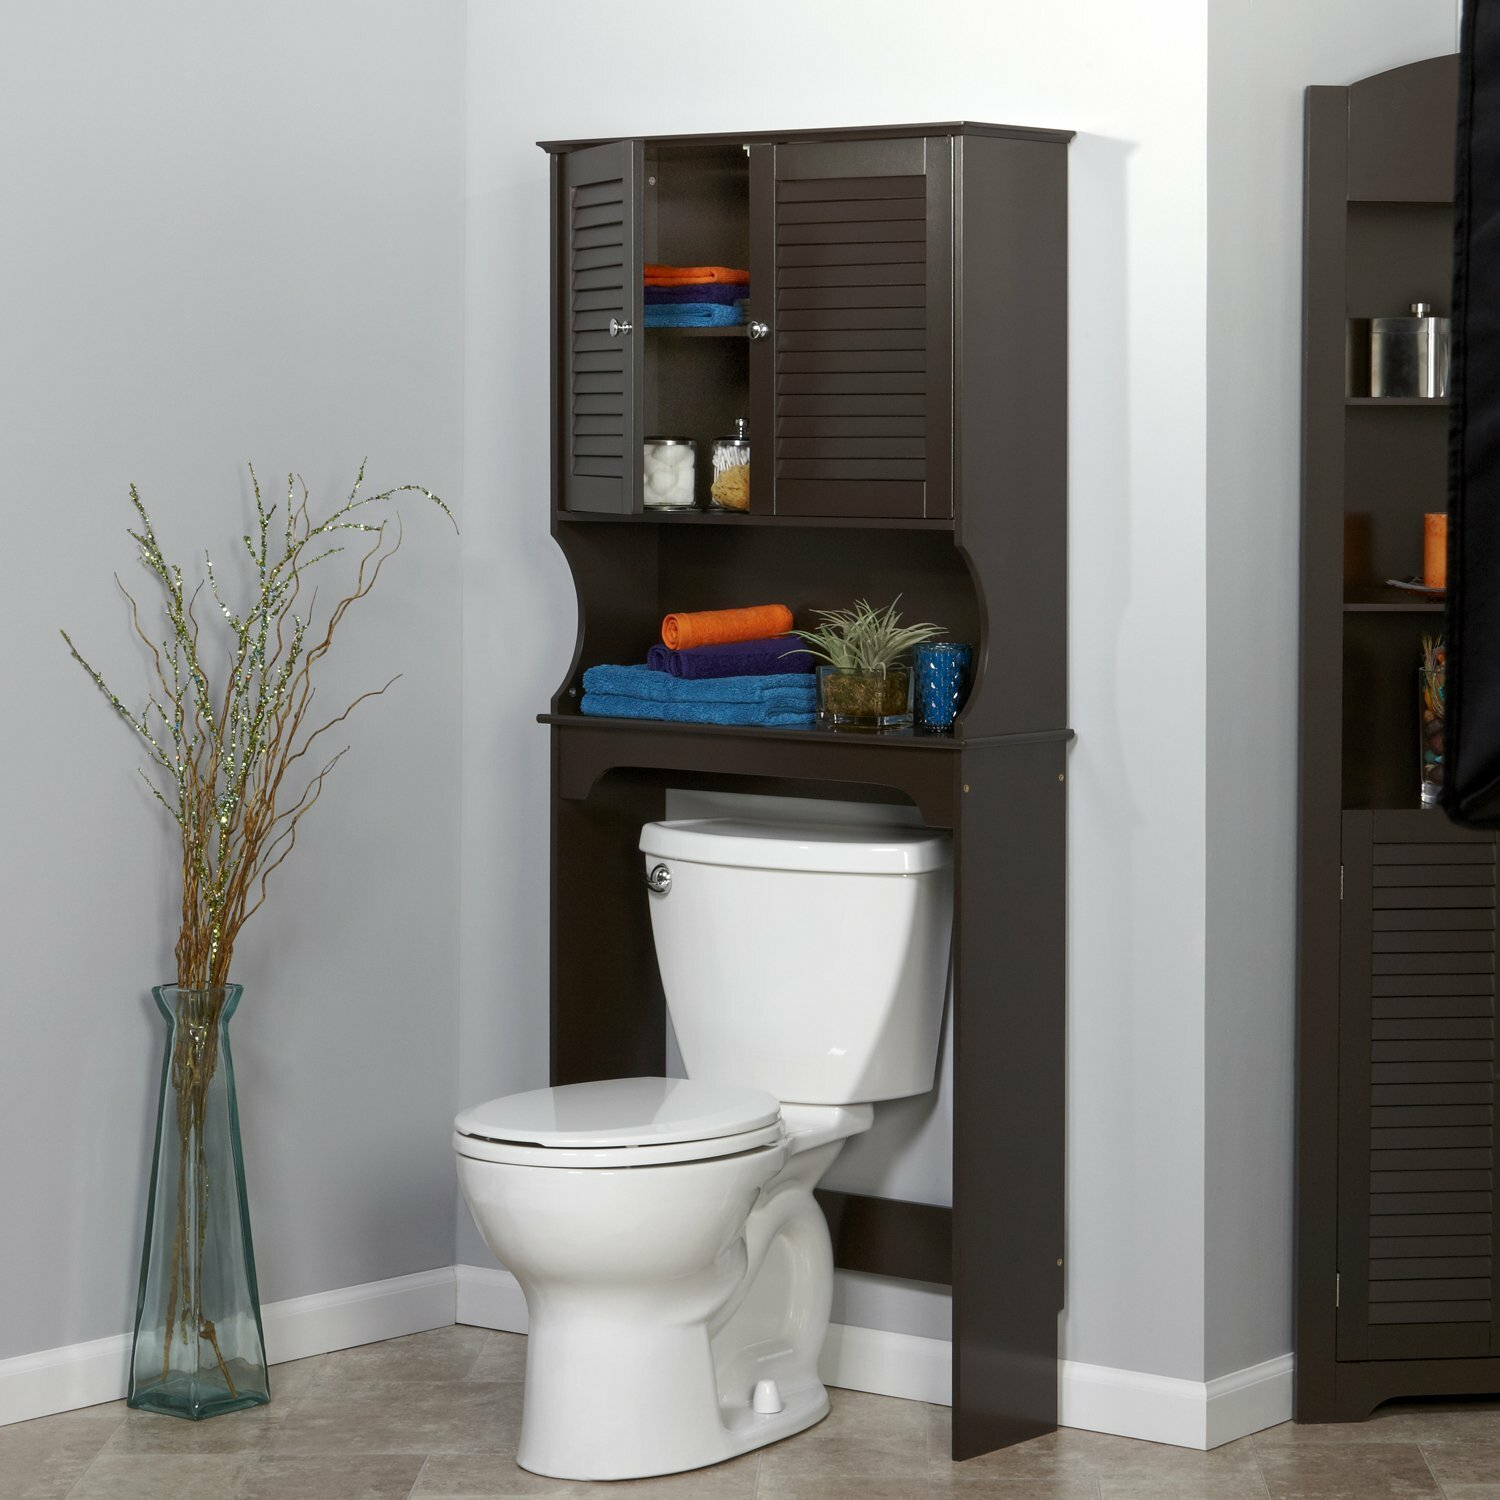 bathroom shelves l over saver etagere toilet nobailout space